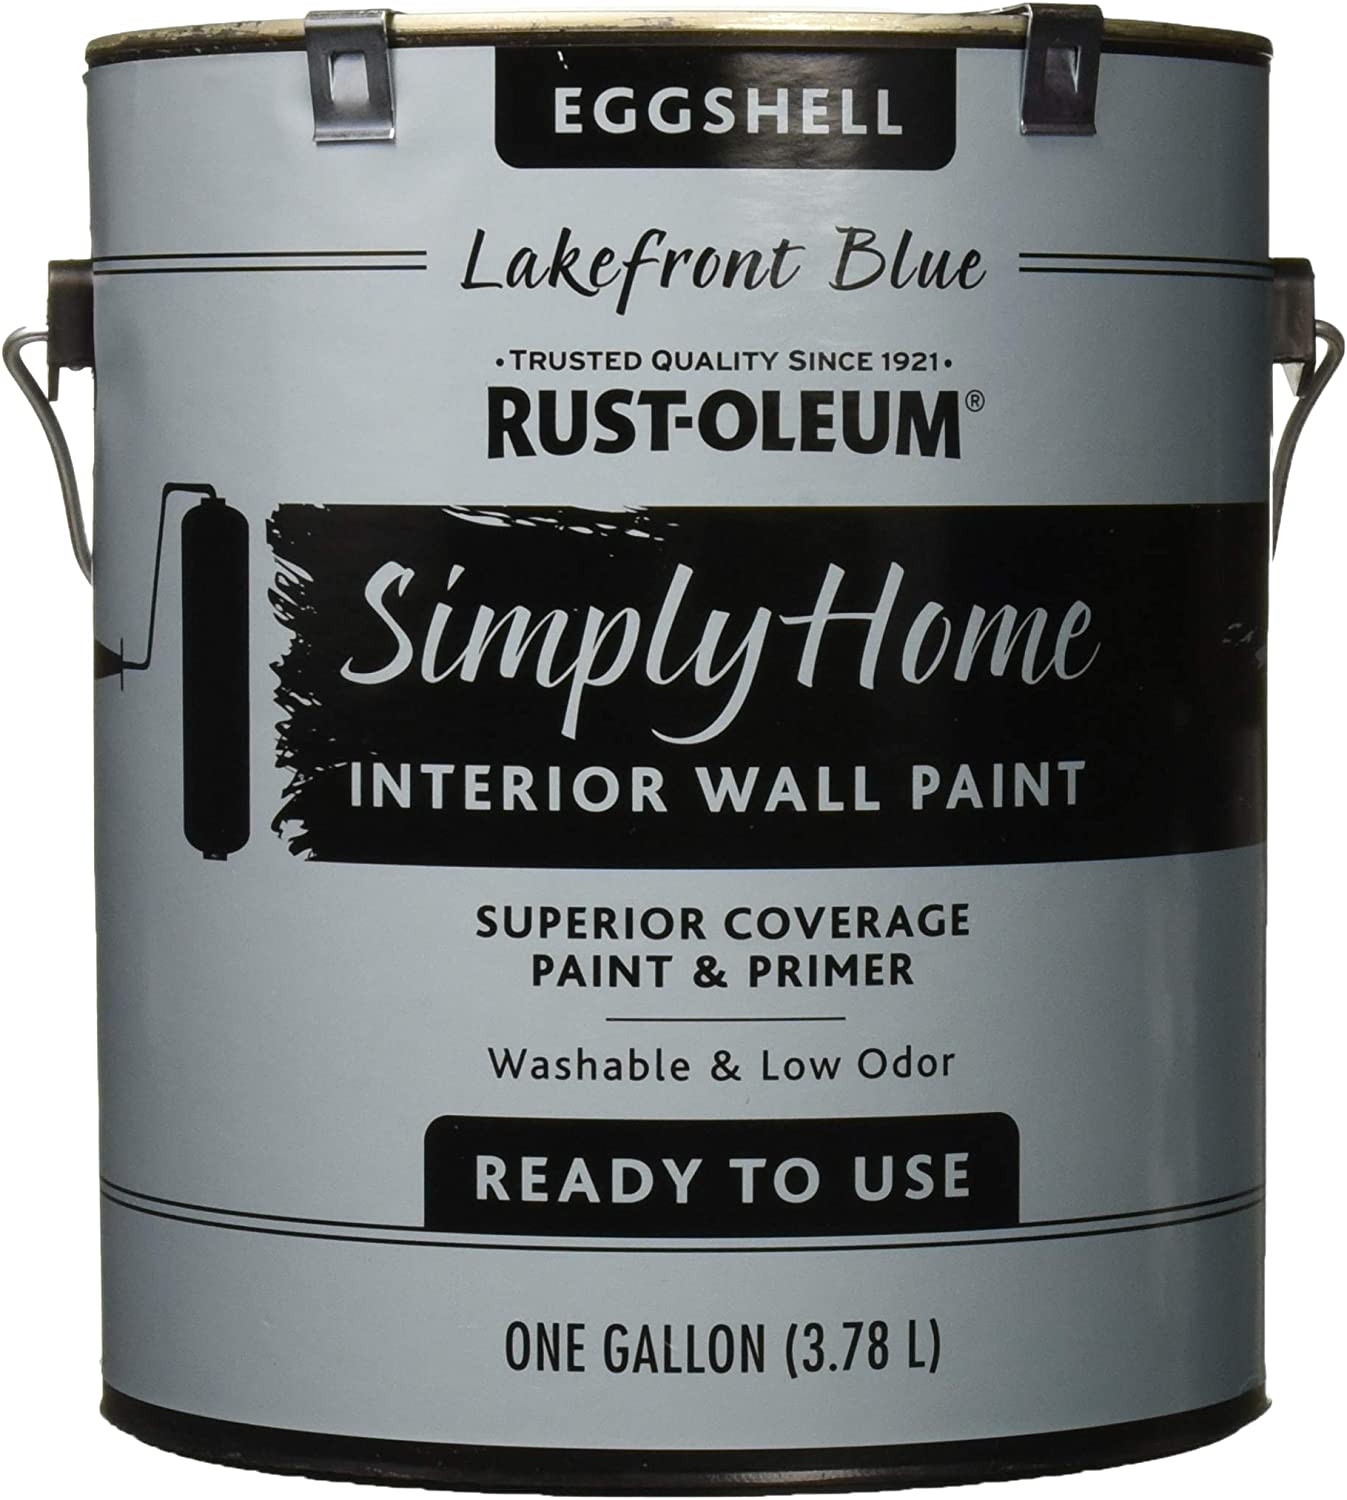 Rust-Oleum Simply Home Interior Wall Paint 332144 Simply Home Eggshell Interior Wall Paint, Lakefront Blue